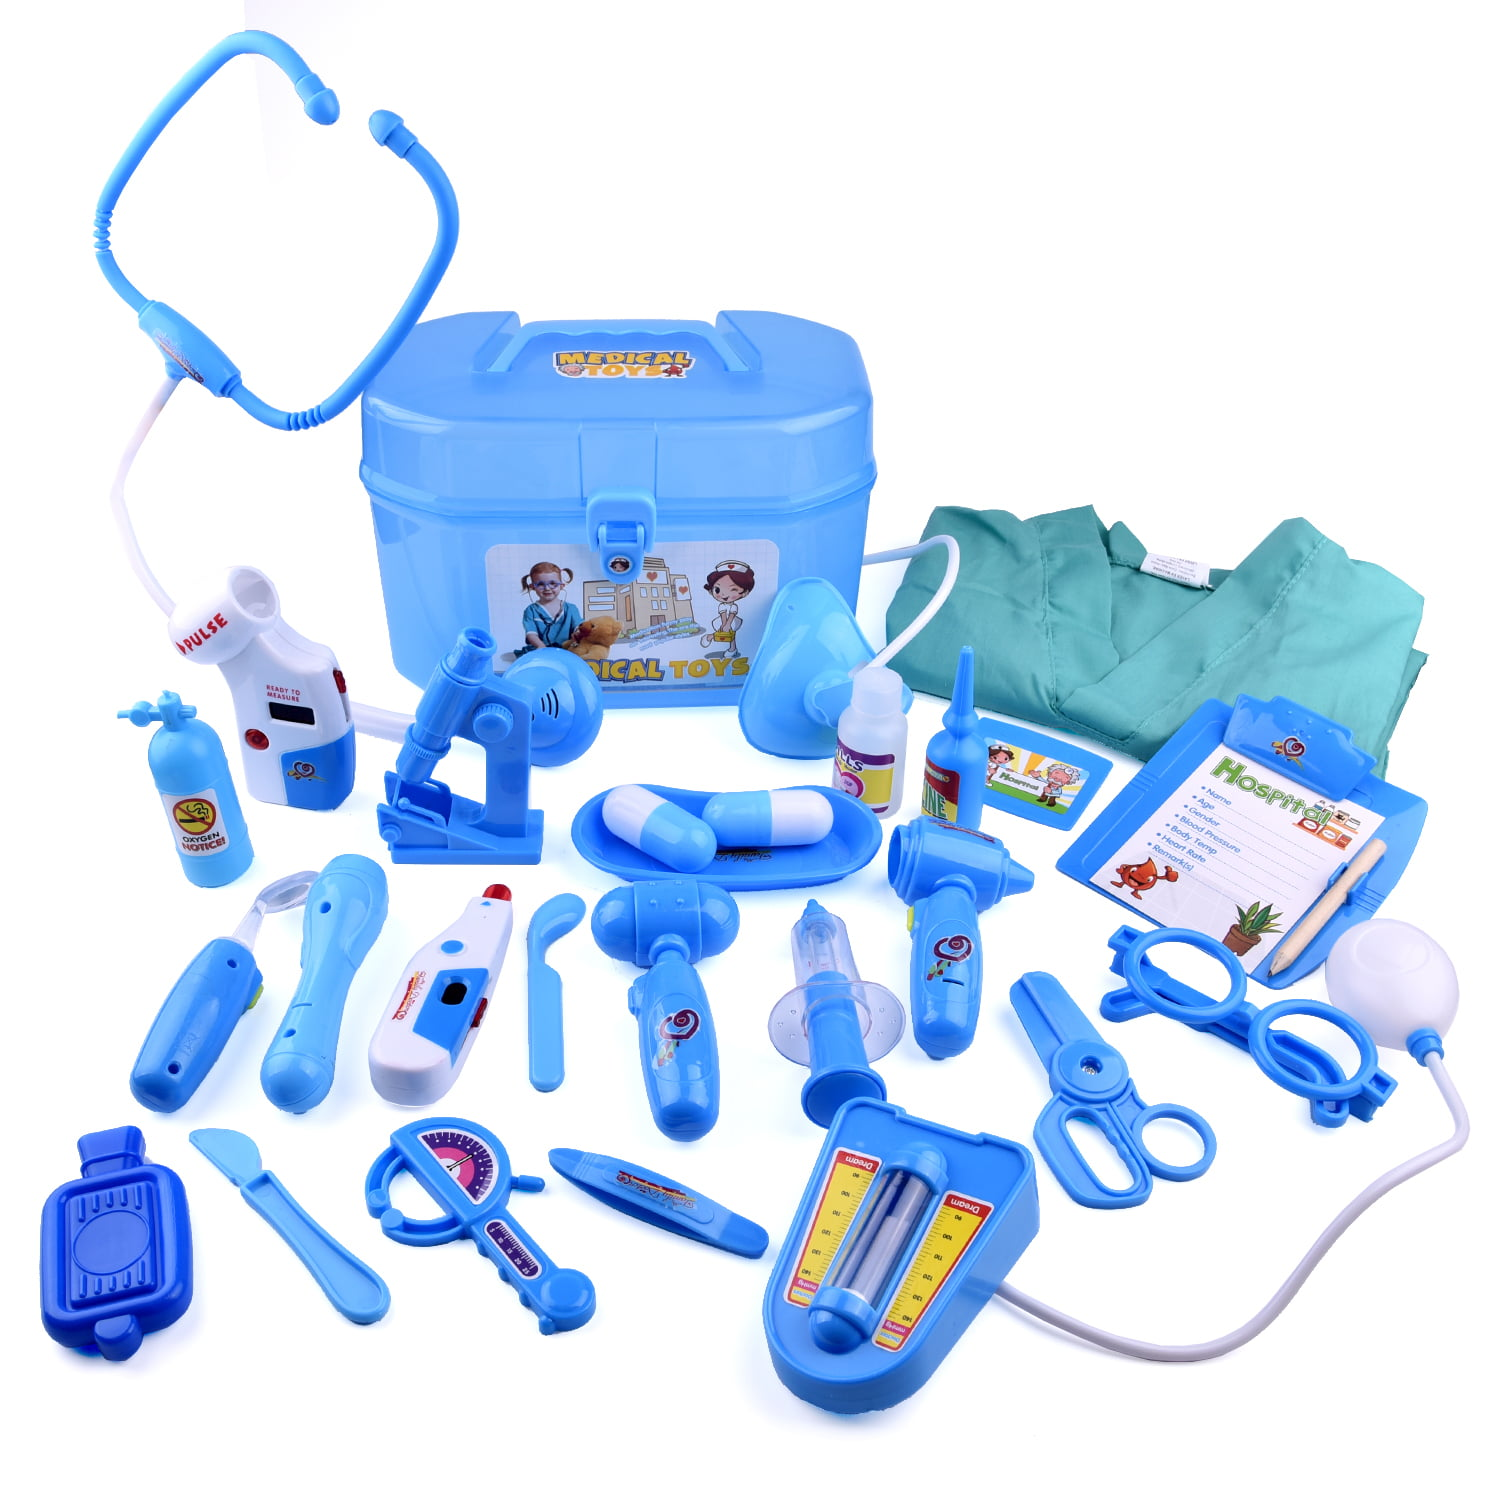 Medical Doctor Kit Toys for Kids Learning Resources Pretend Play Doctor Play Set for Kids Holiday Gifts,... by